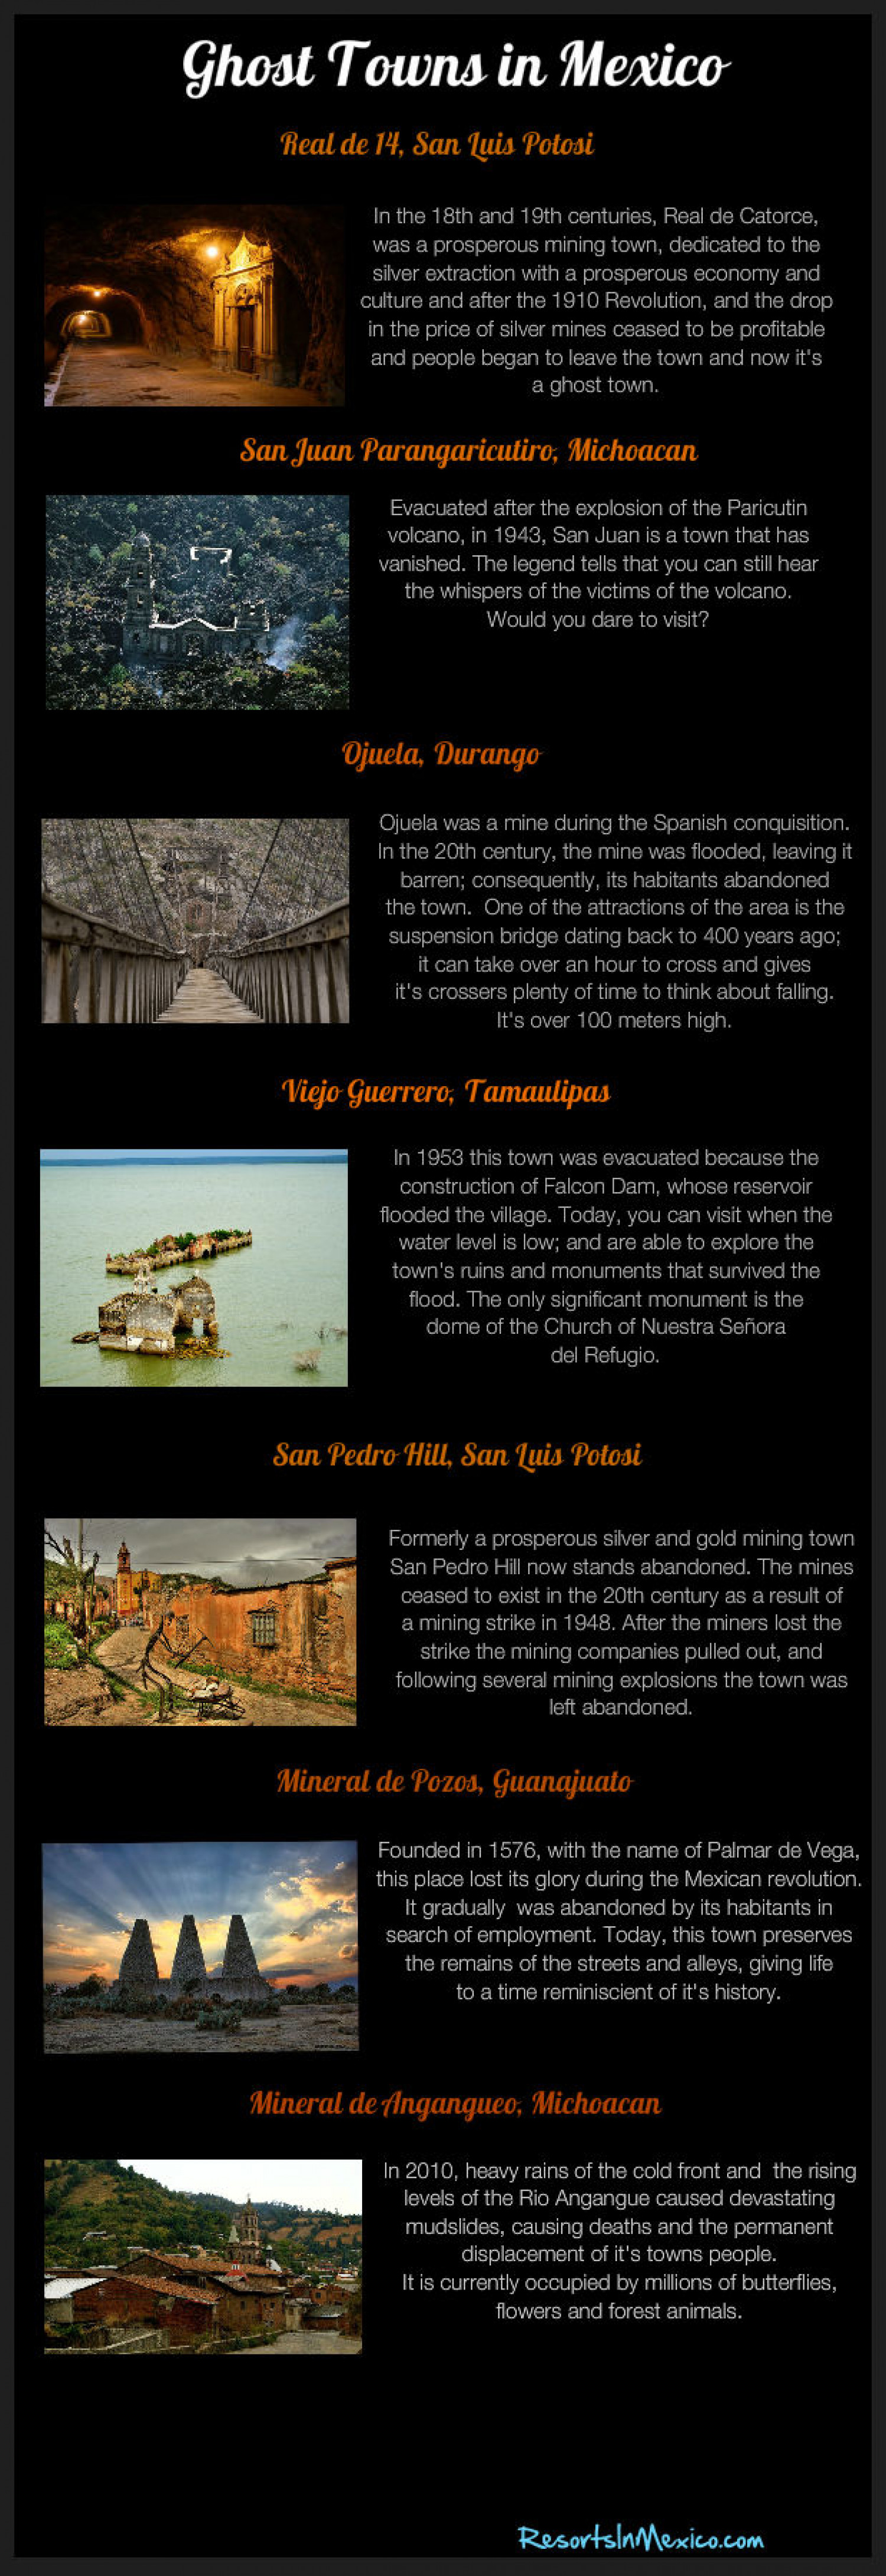 Ghost Towns In Mexico Infographic